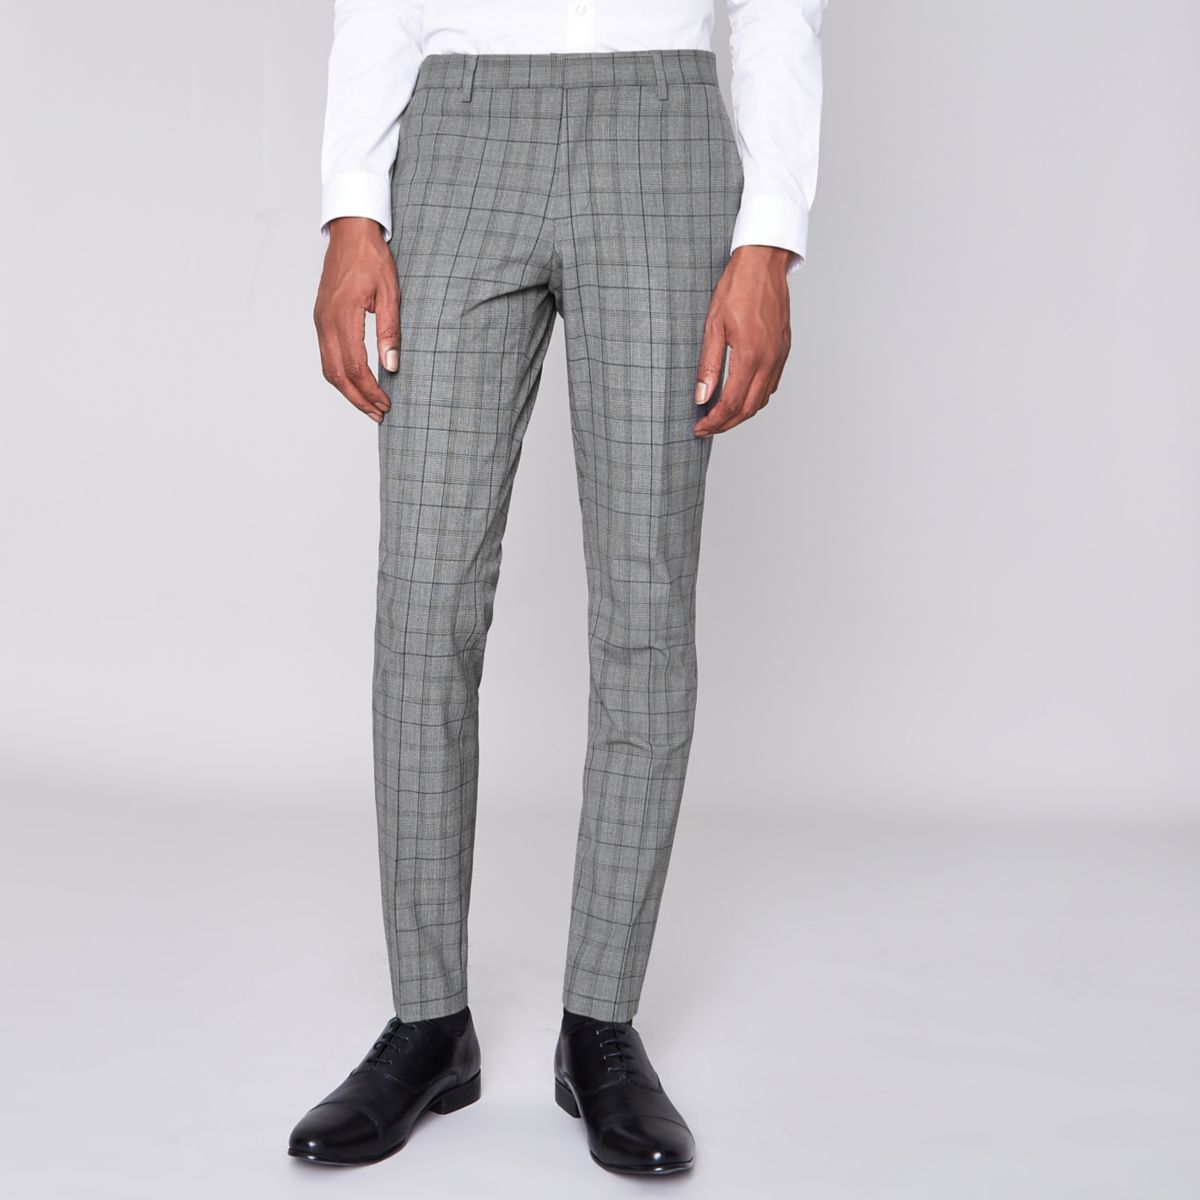 Grey check super skinny fit suit pants